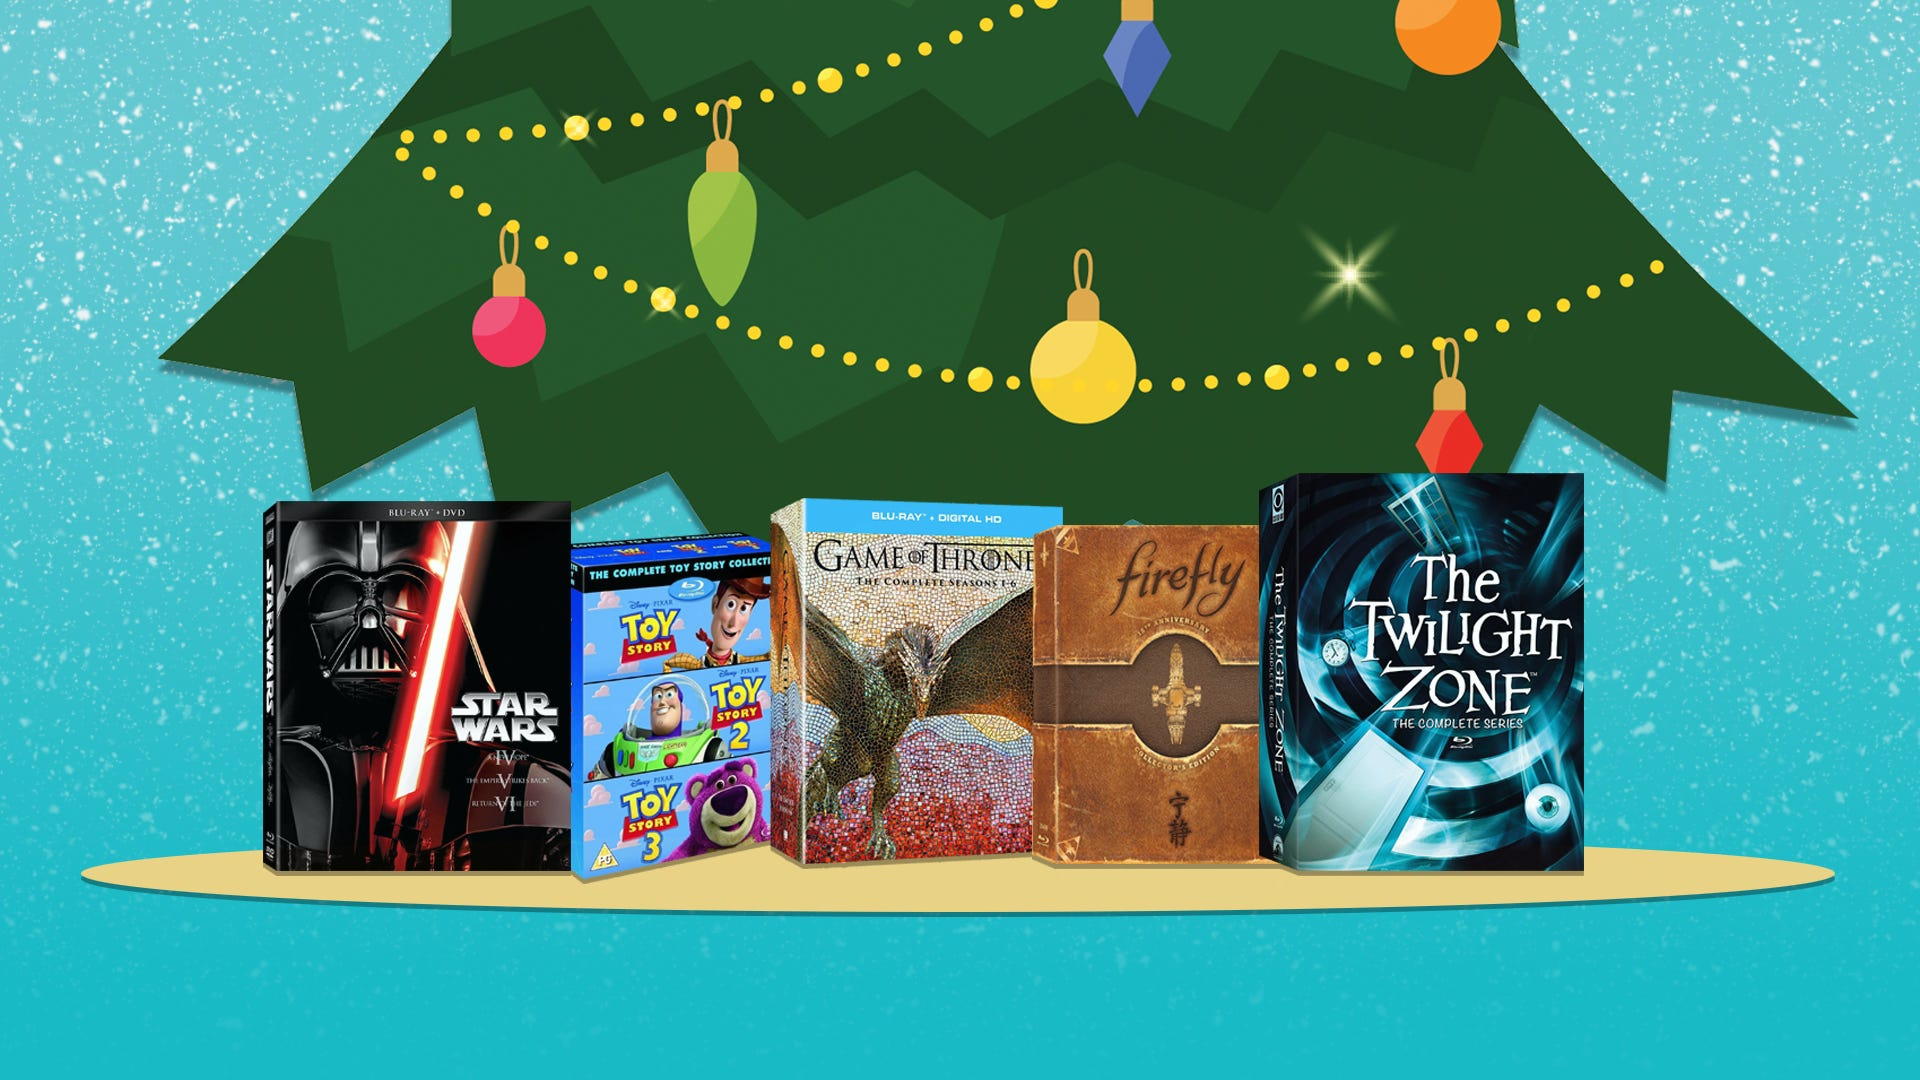 The Best Blu-ray Box Sets to Gift This Holiday Season